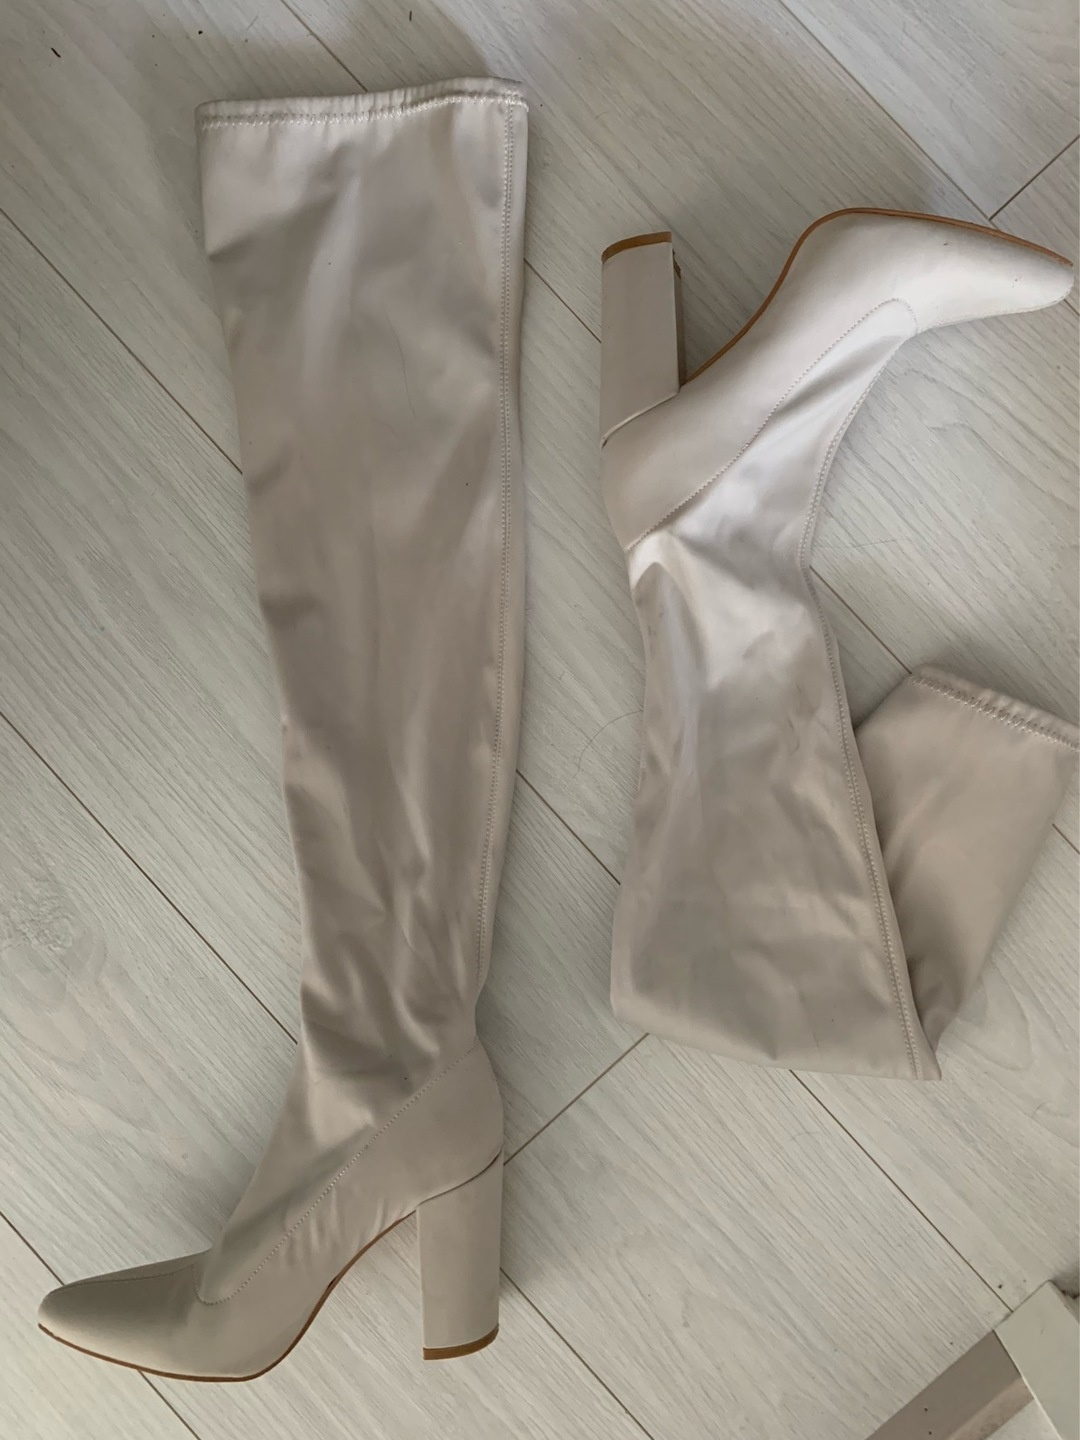 Women's boots - MISSGUIDED photo 4